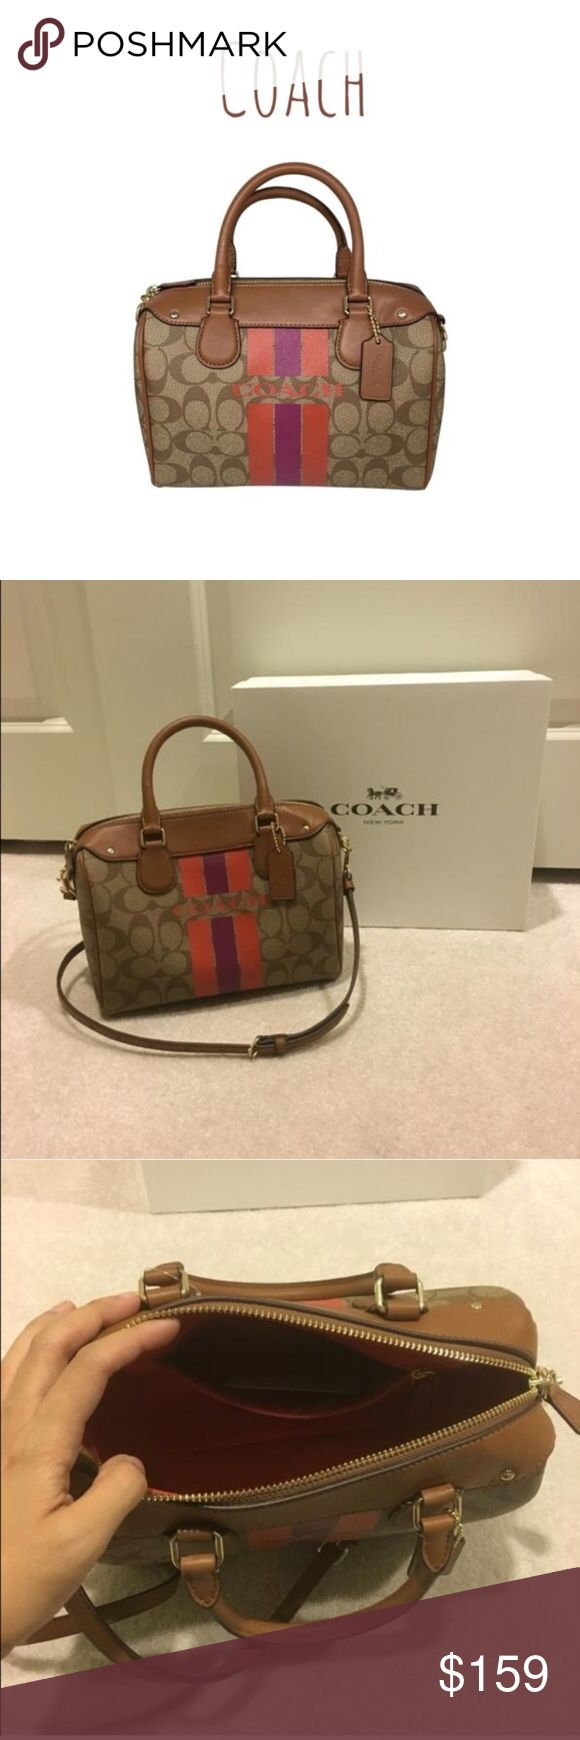 "Coach satchel bag top handle shoulder strap COACH BENETT  Brand new!! 100% authentic.   Removable shoulder strap.  Comes with Coach gift box and paper bag.  Dimension: 9"" x 7"" x 5""  Will provide gift receipt.   NO TRADE!!! Coach Bags"